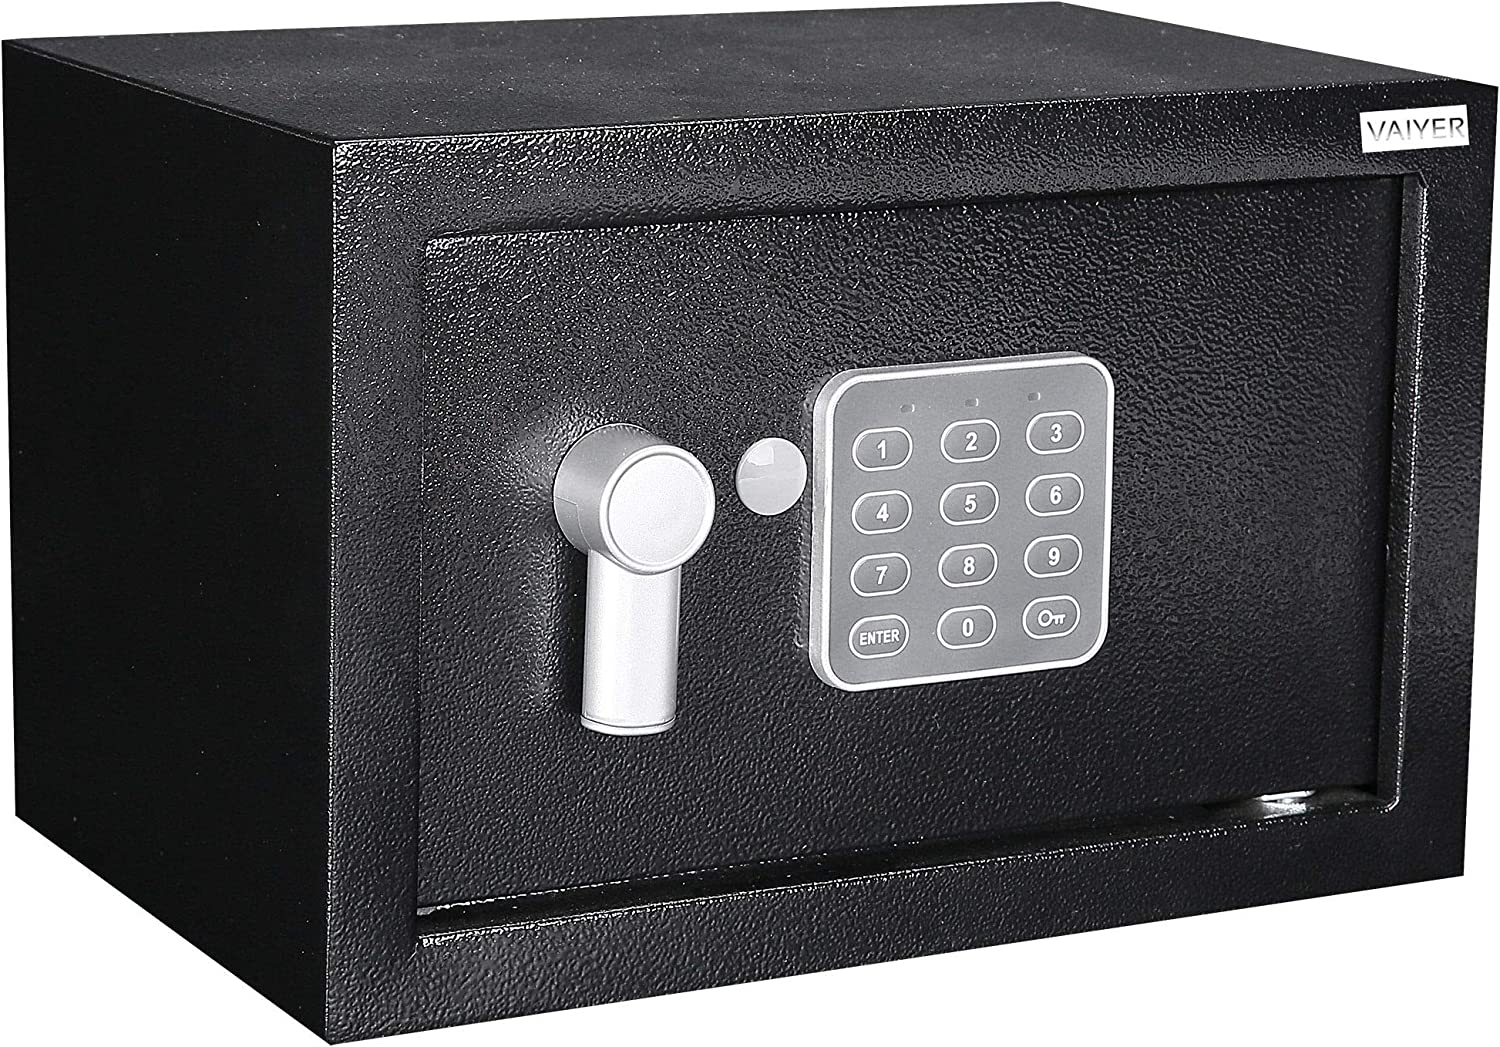 Home and Office Electronic Safe Box with Digital Keypad & Keys, Money Lock Boxes, Safety Boxes for Home, Office, Hotel Rooms, Business, Jewelry, Gun, Cash, Steel Alloy Drop Safe 6.7 x 9 x 6.7 inches